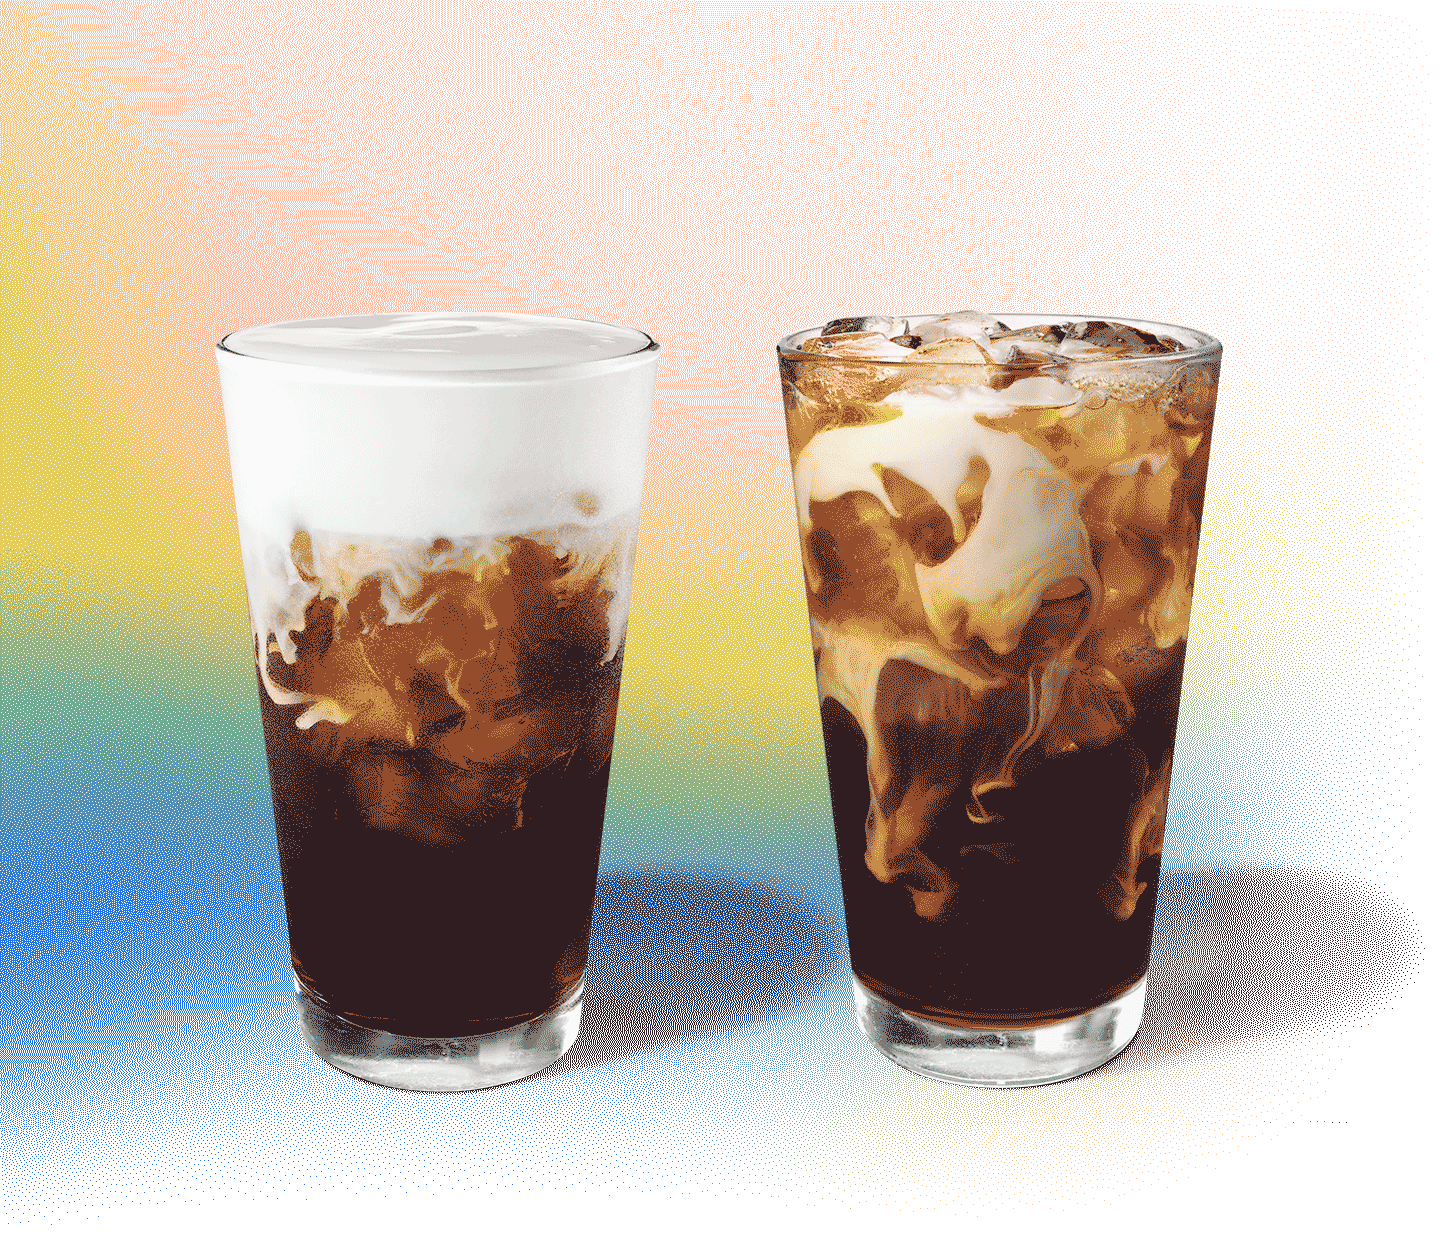 Two coffee and cream drinks in a glass sit next to each other.